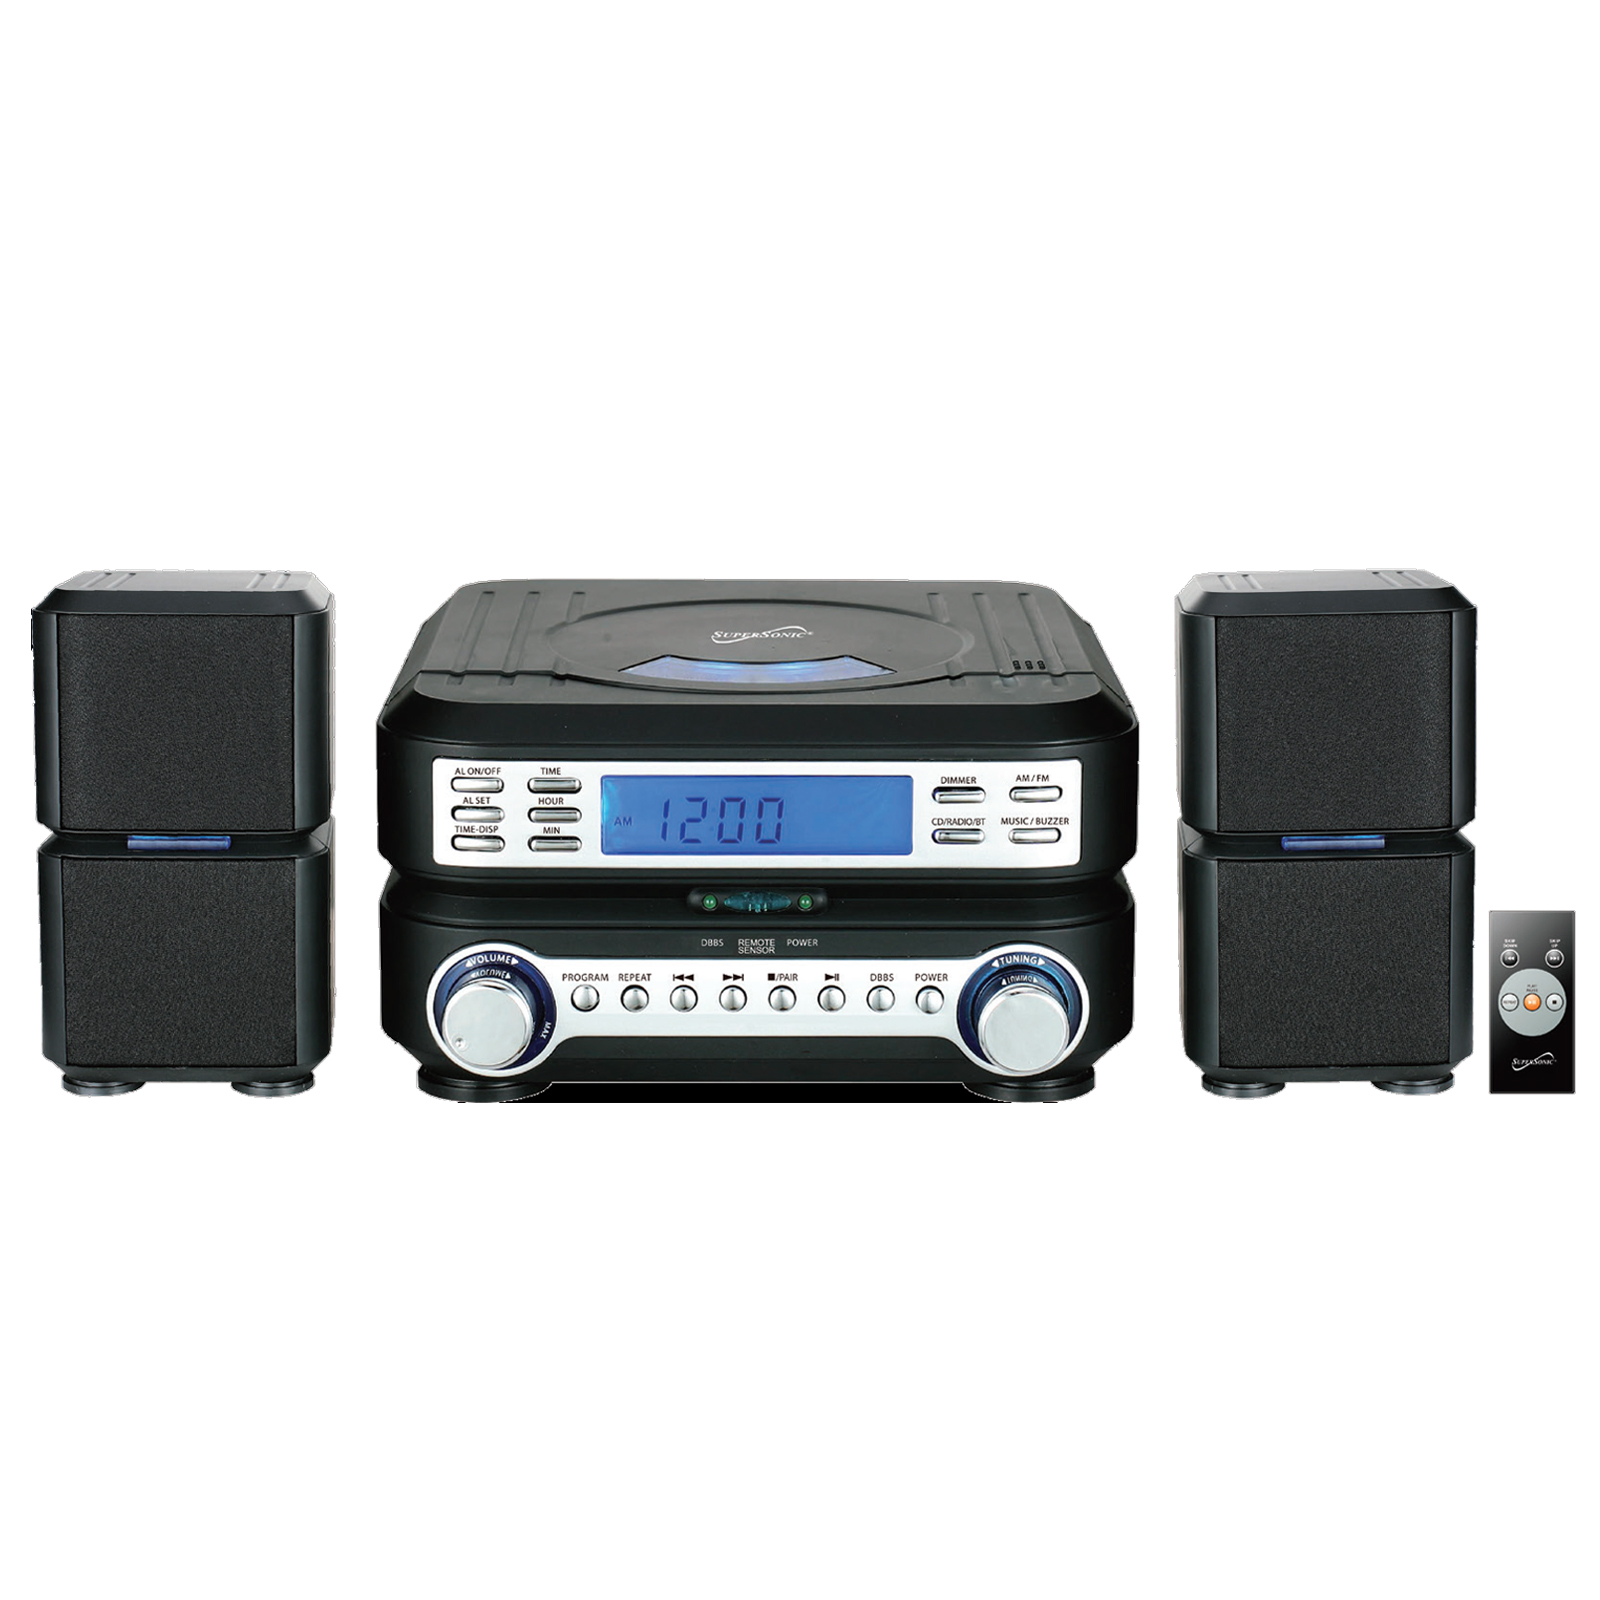 Supersonic Portable Micro System with BT ,CD Player, AUX Input & AM FM Radio by Supersonic